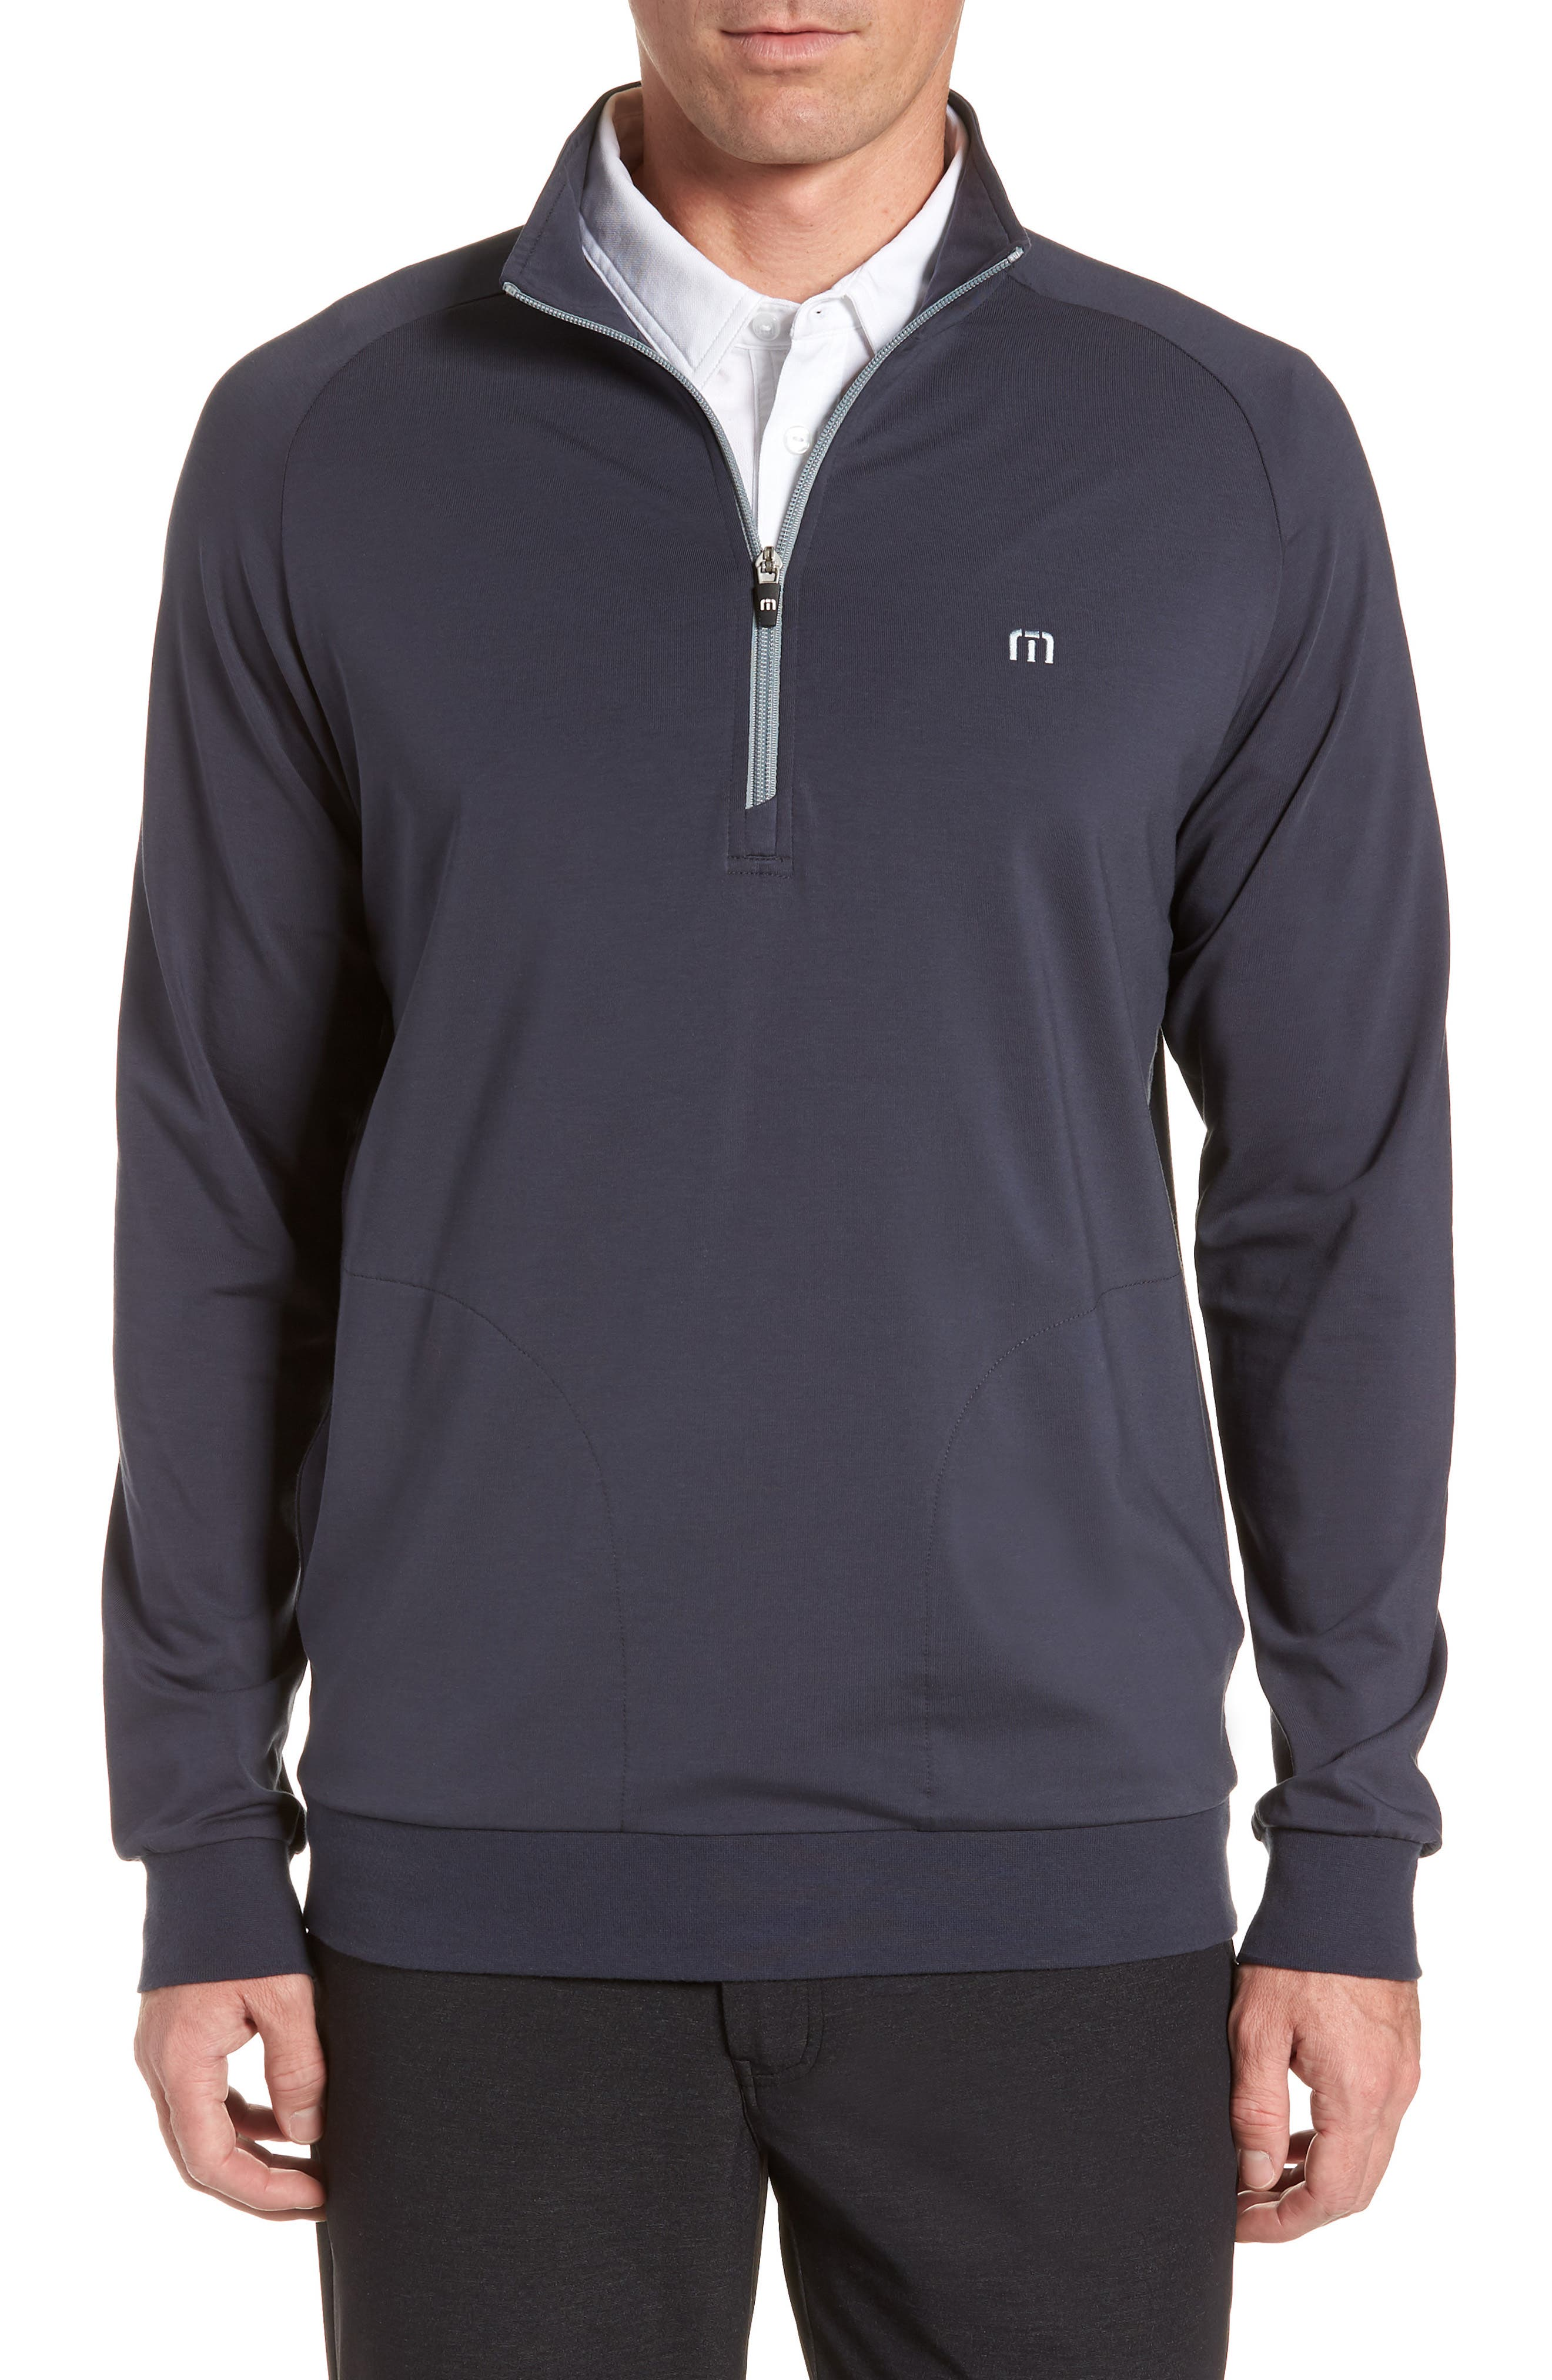 'Strange Love' Trim Fit Wrinkle Resistant Quarter Zip Jacket,                             Main thumbnail 1, color,                             BLUE NIGHTS